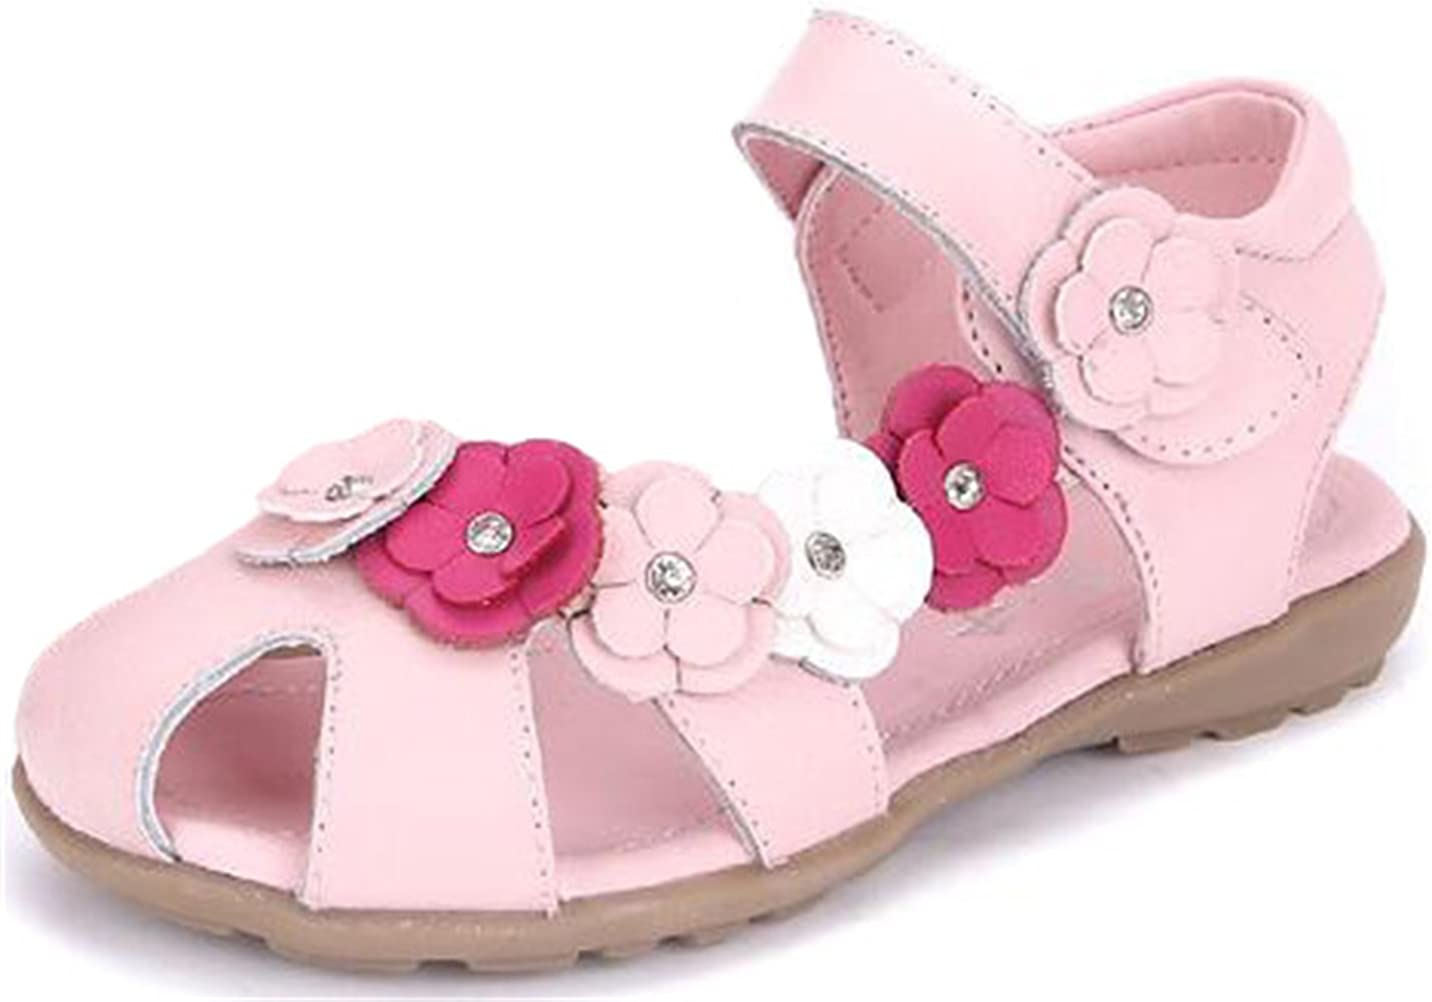 PPXID Genuine Little Girl's Soft Leather Princess Oxford Ranking TOP4 Sandal Flowers